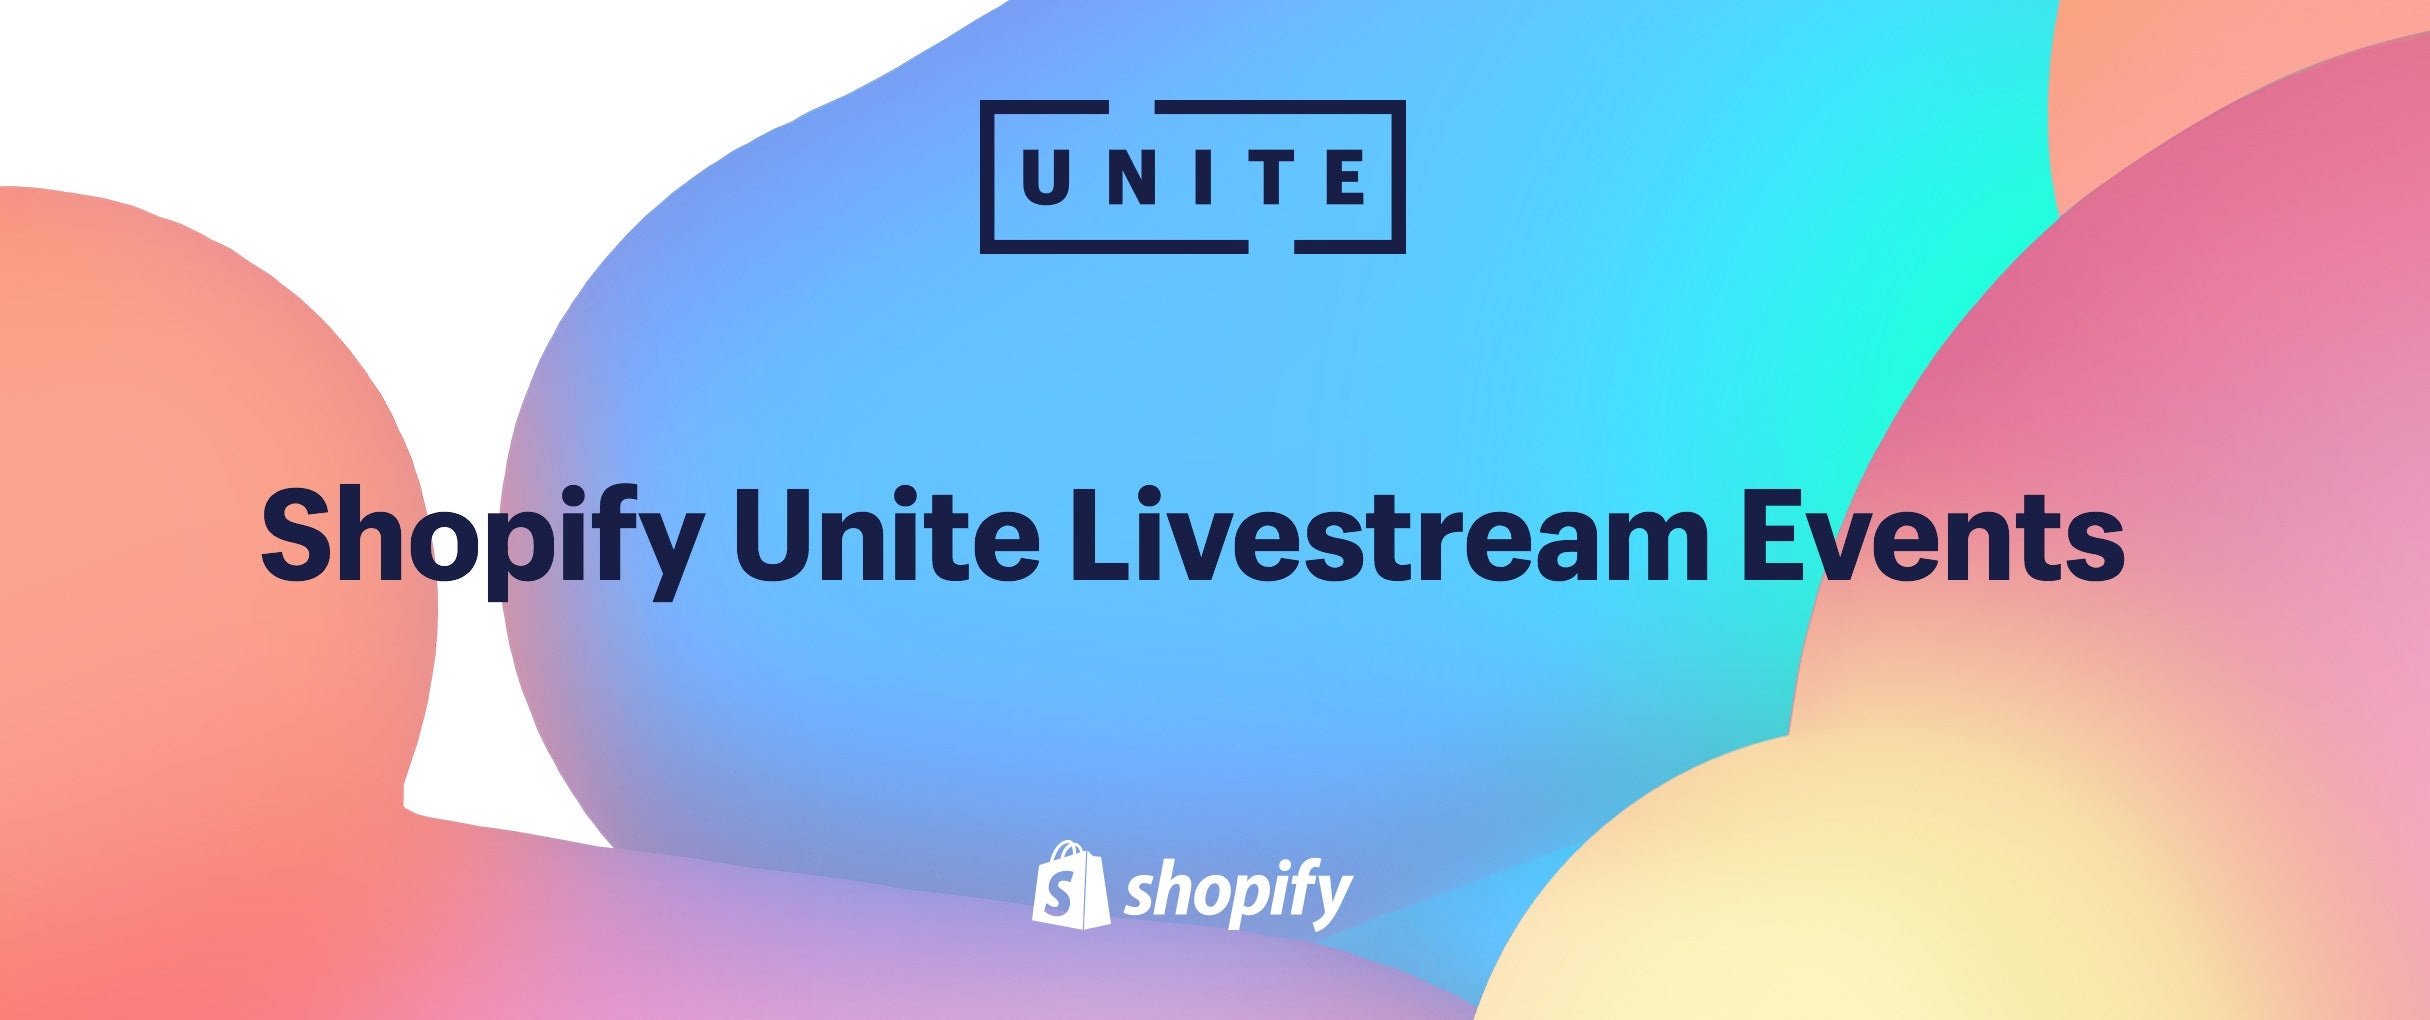 Announcing the 2018 Shopify Unite Livestream Events